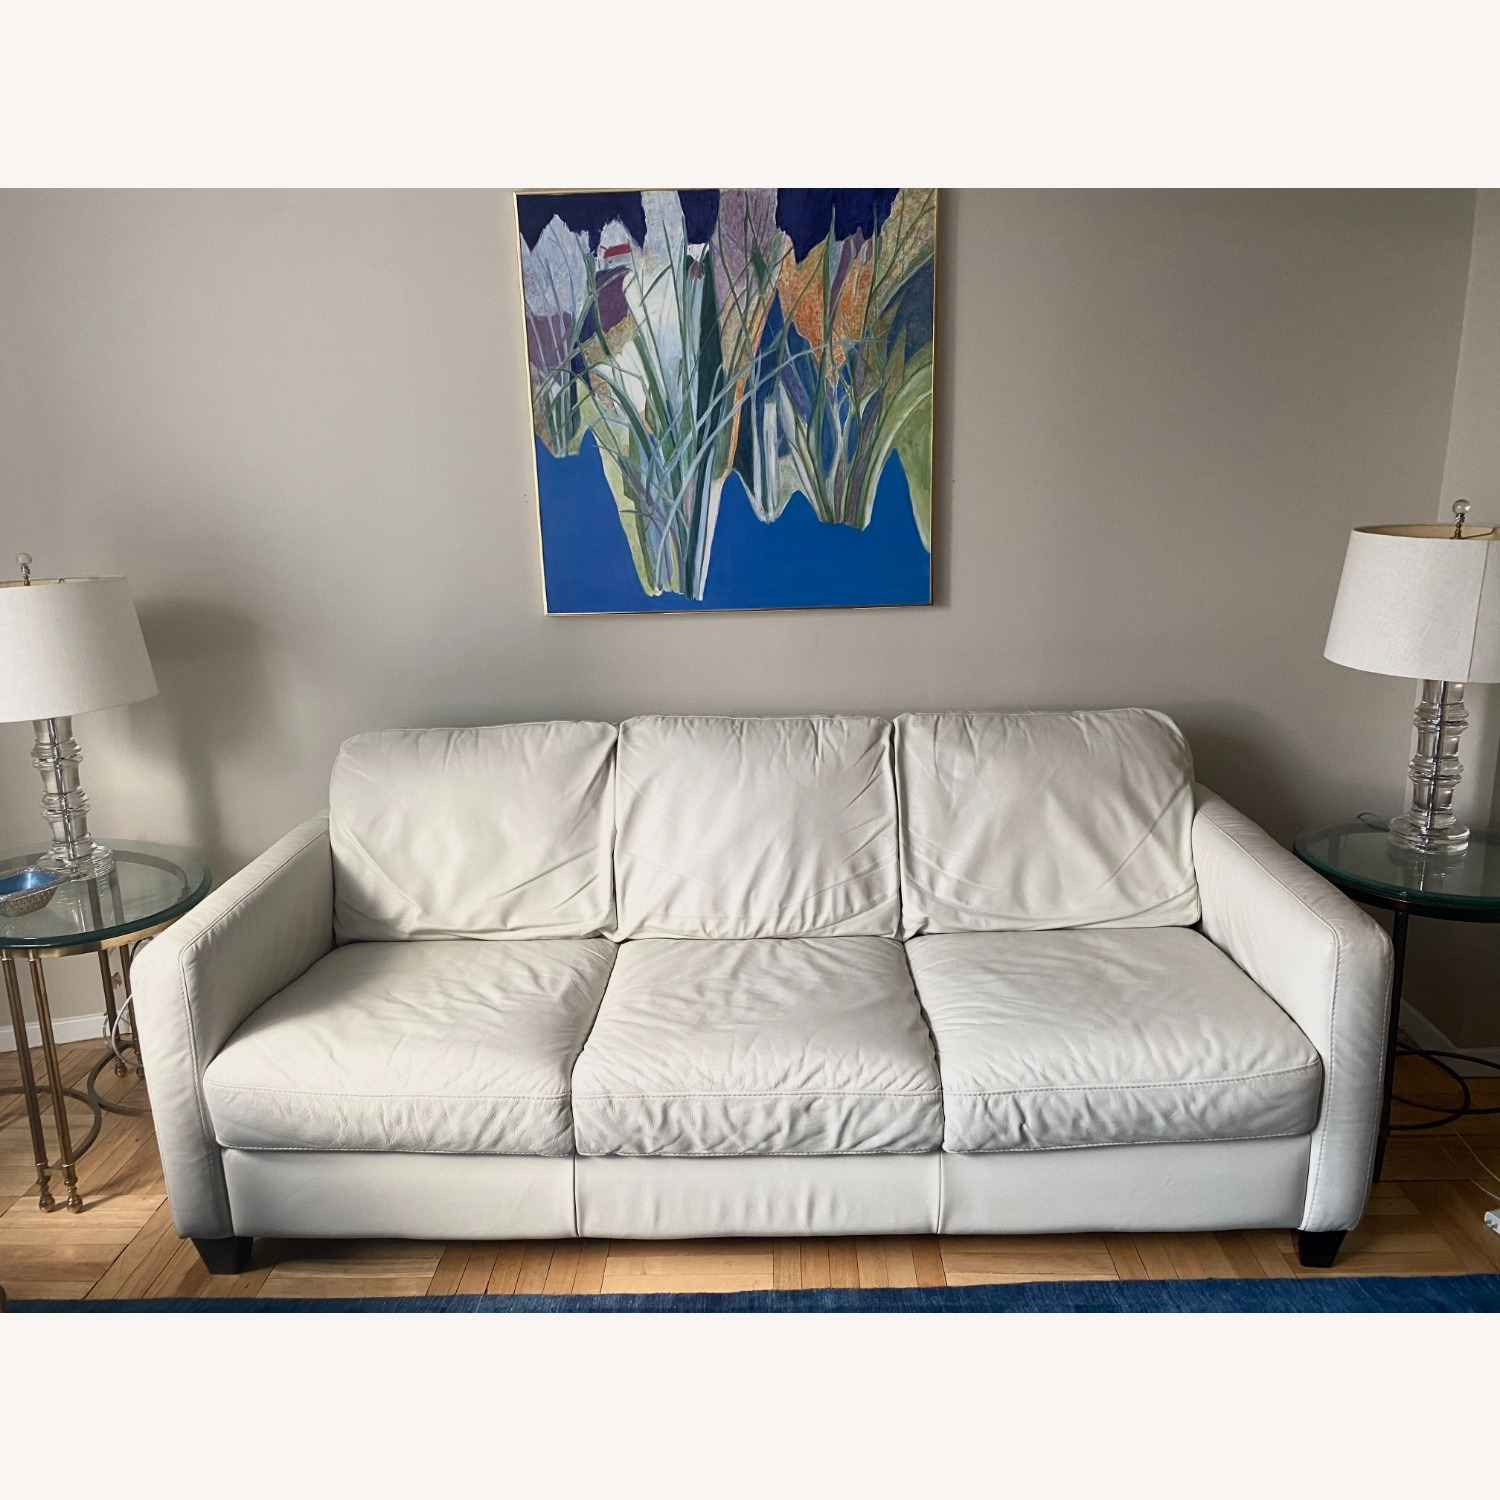 Macy's White Leather Three-seater Couch - image-4